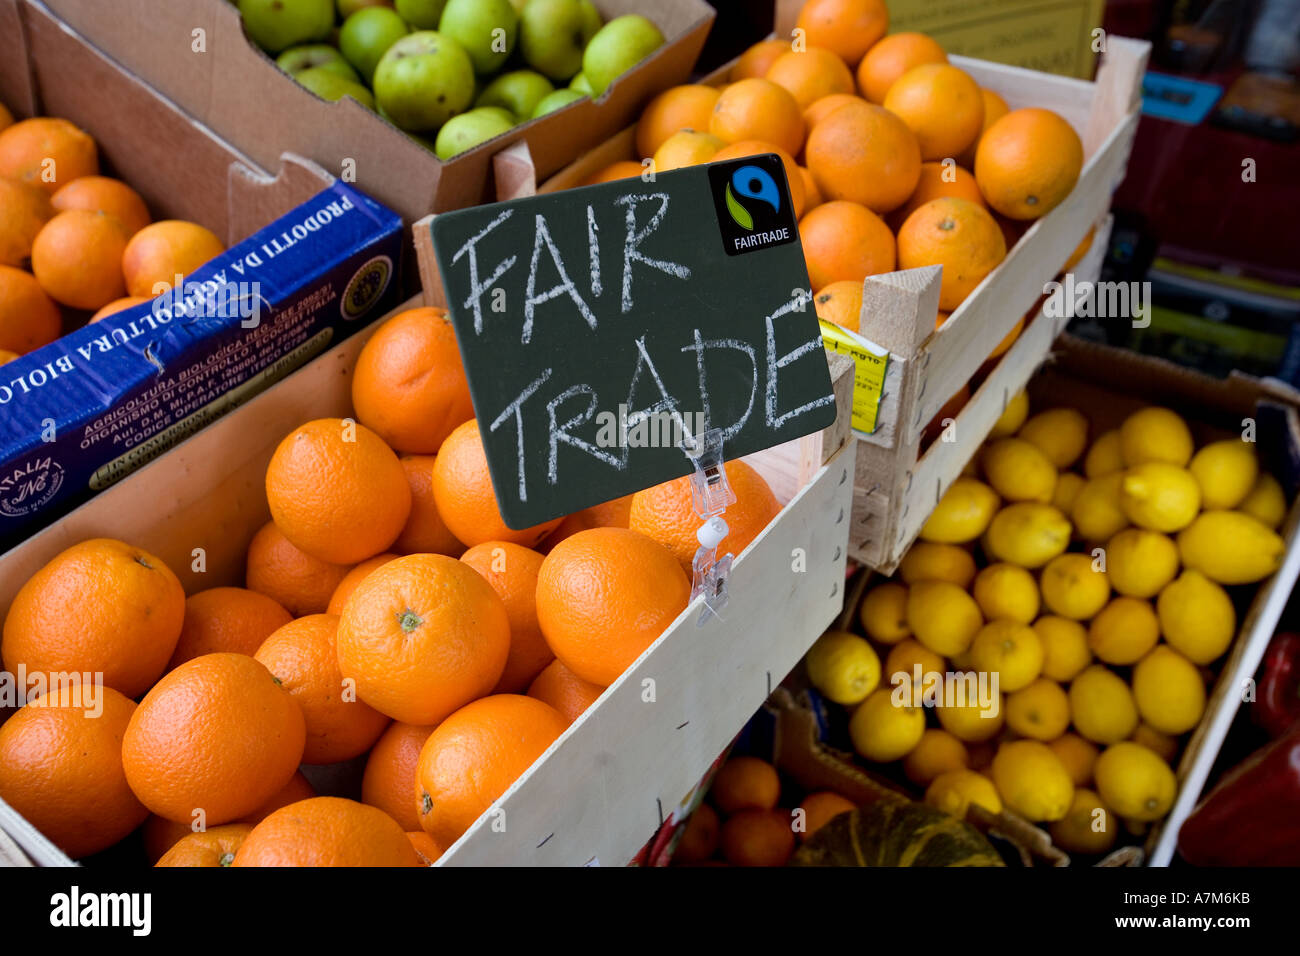 Fair trade fruit on sale outside an organic shop in Oswestry, Shropshire, UK - Stock Image